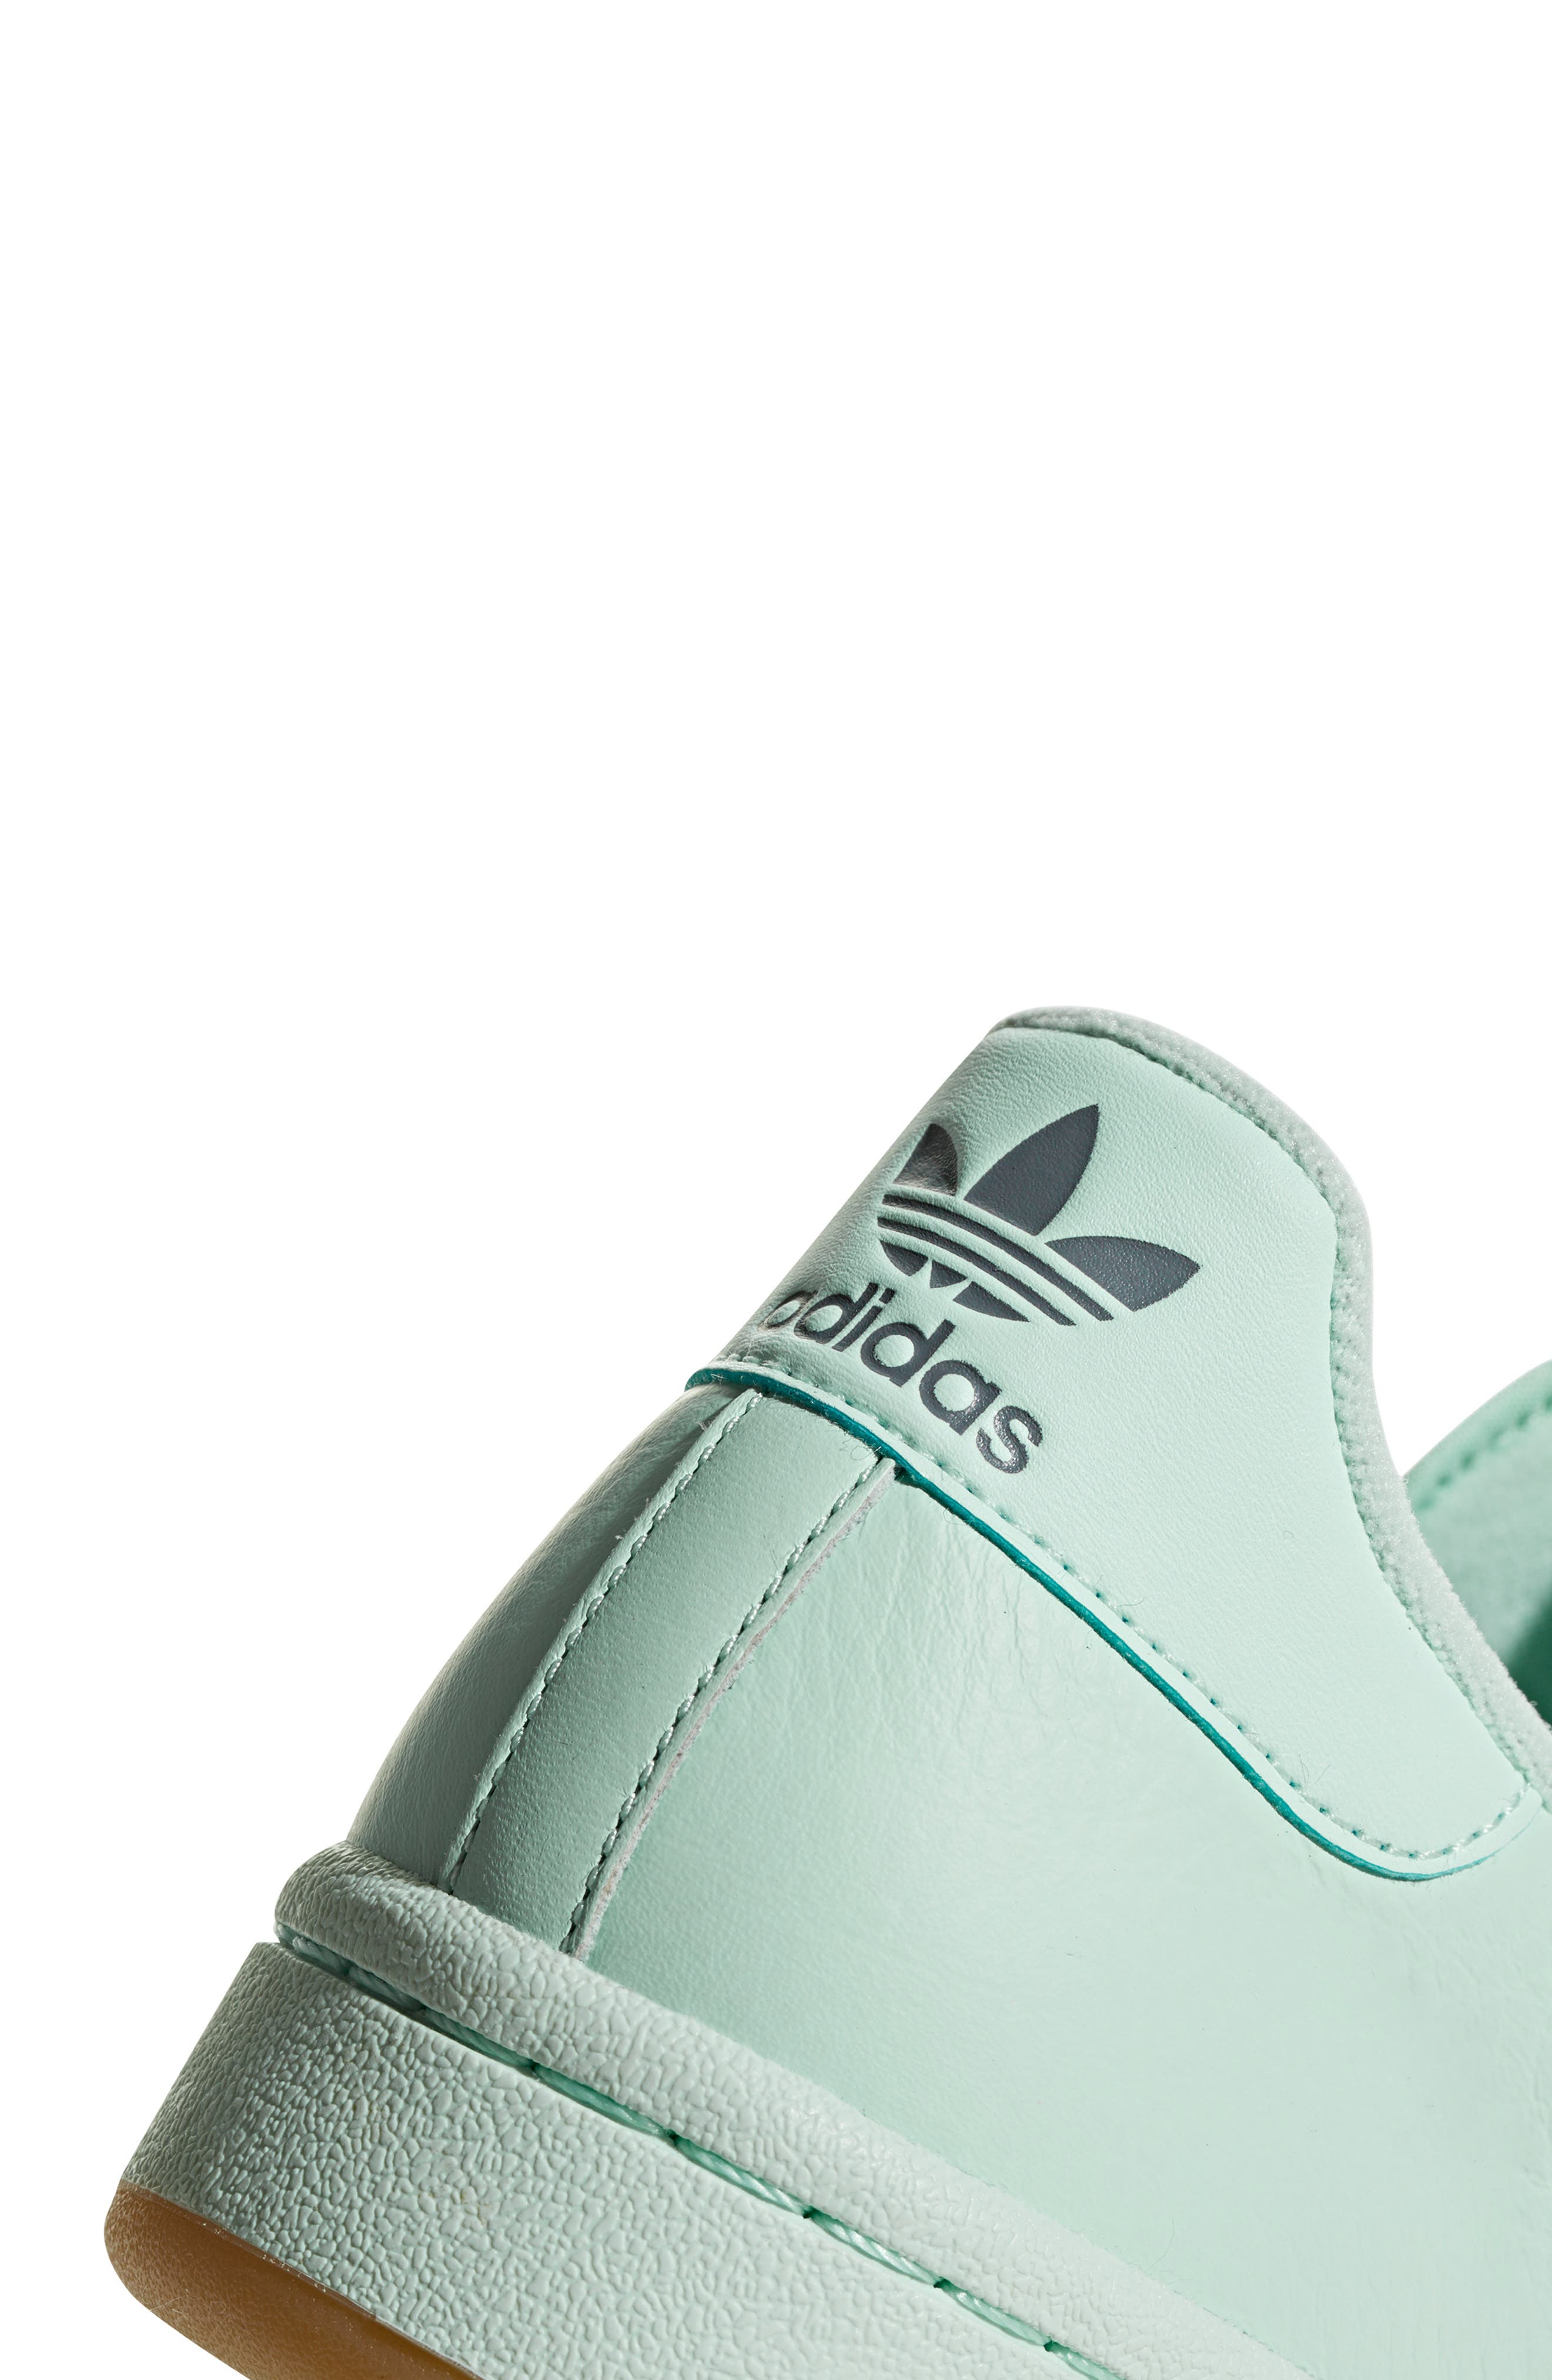 ADIDAS, Continental 80 Sneaker, Alternate thumbnail 8, color, ICE MINT/ NAVY/ GREY